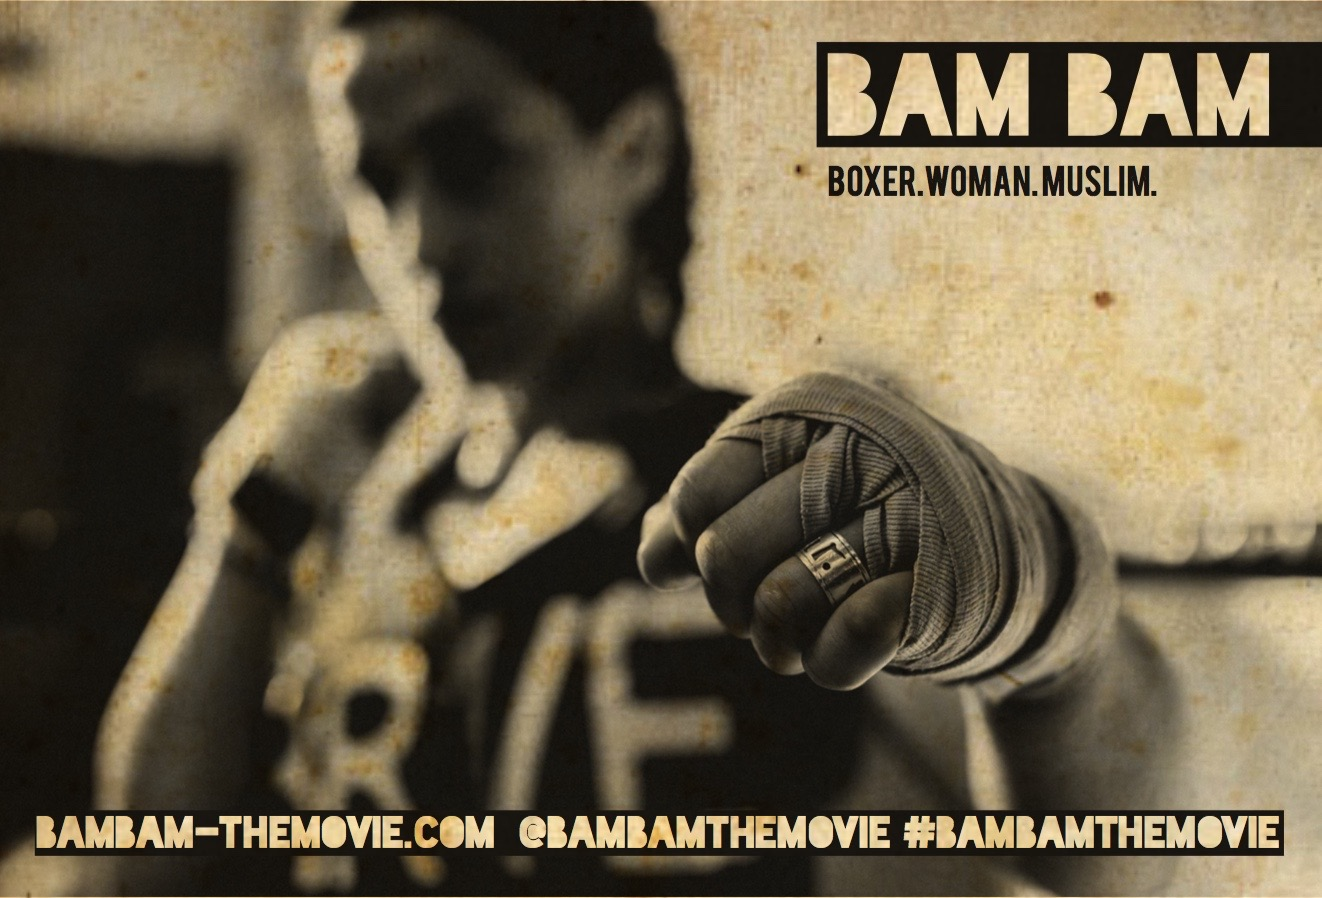 Rough Cut on Documentary Bam Bam